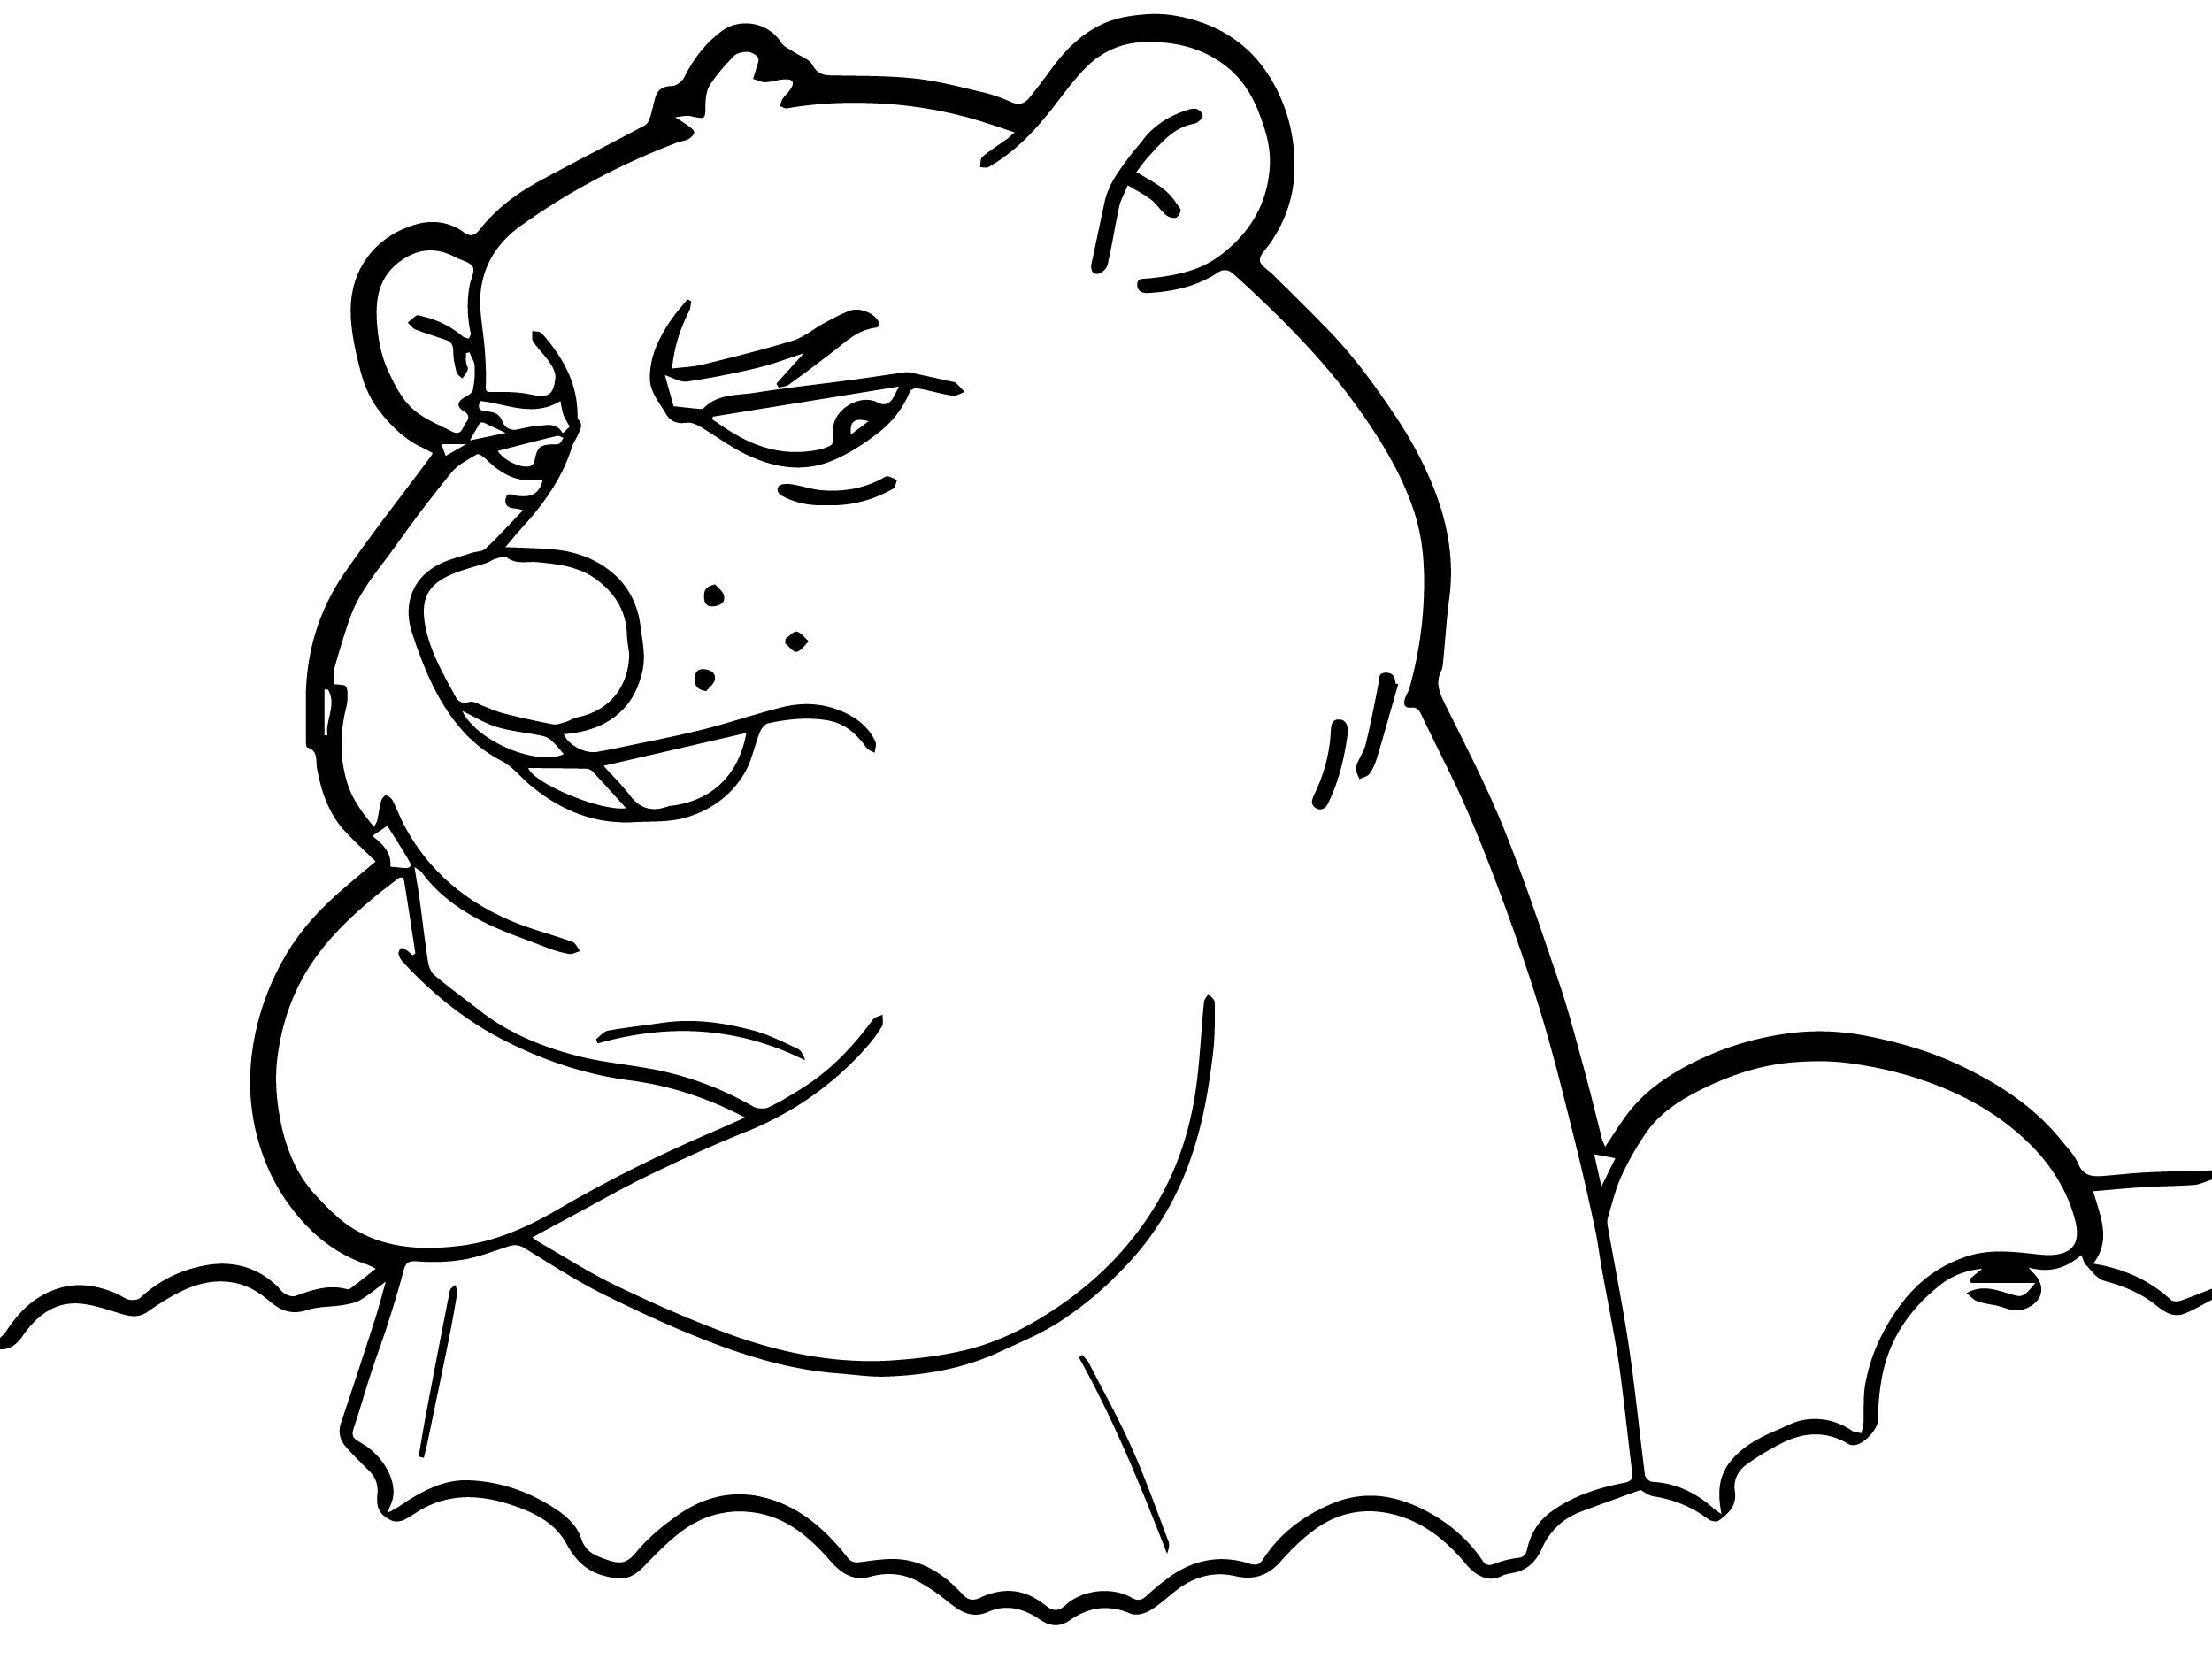 Groundhog Coloring Pages Or Sheets Cartoon Coloring Pages Monster Coloring Pages Coloring Pages [ 1875 x 2500 Pixel ]